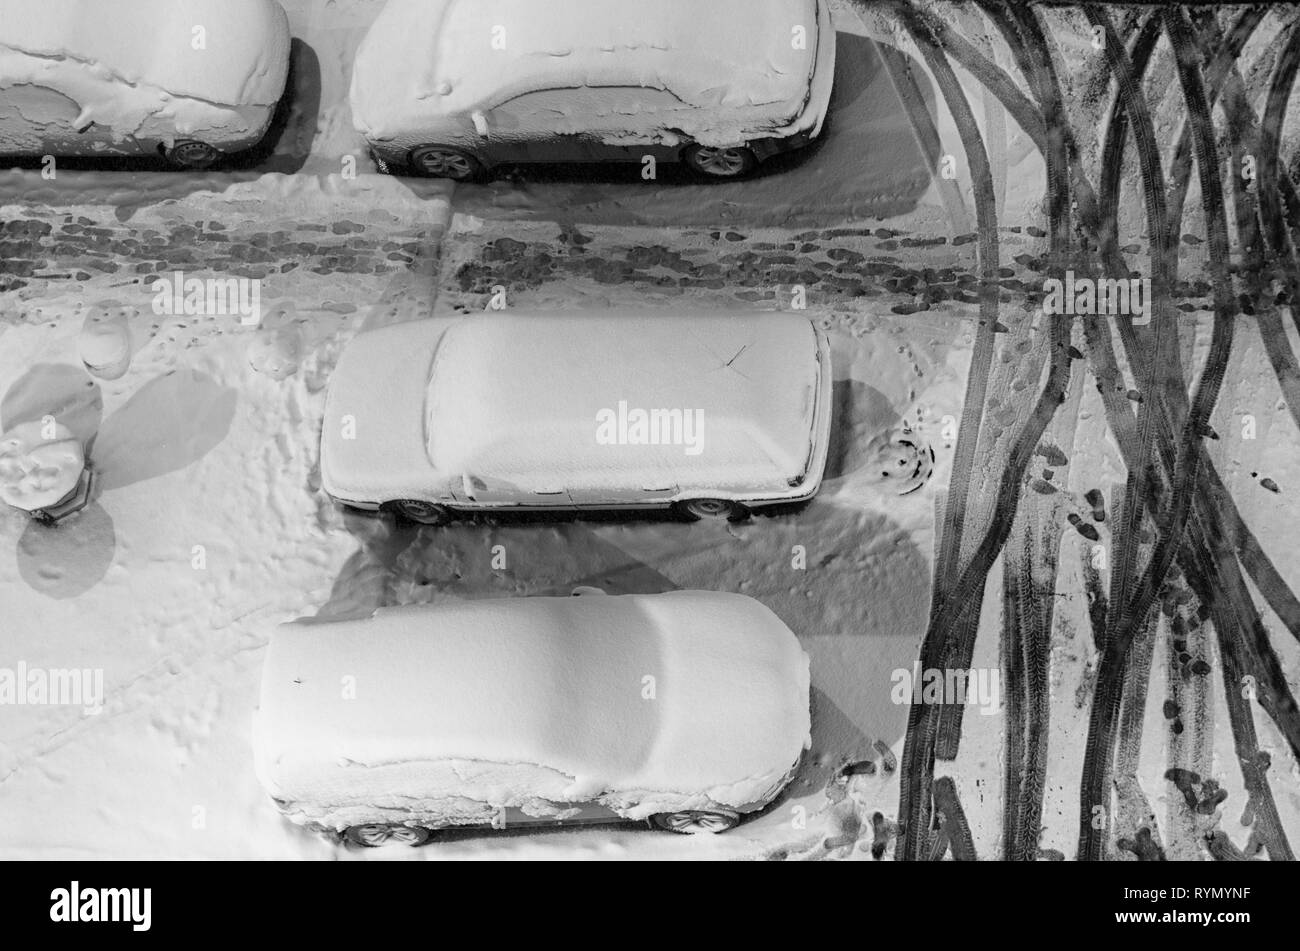 Parked cars and footprints in the snow in black and white style top view - Stock Image